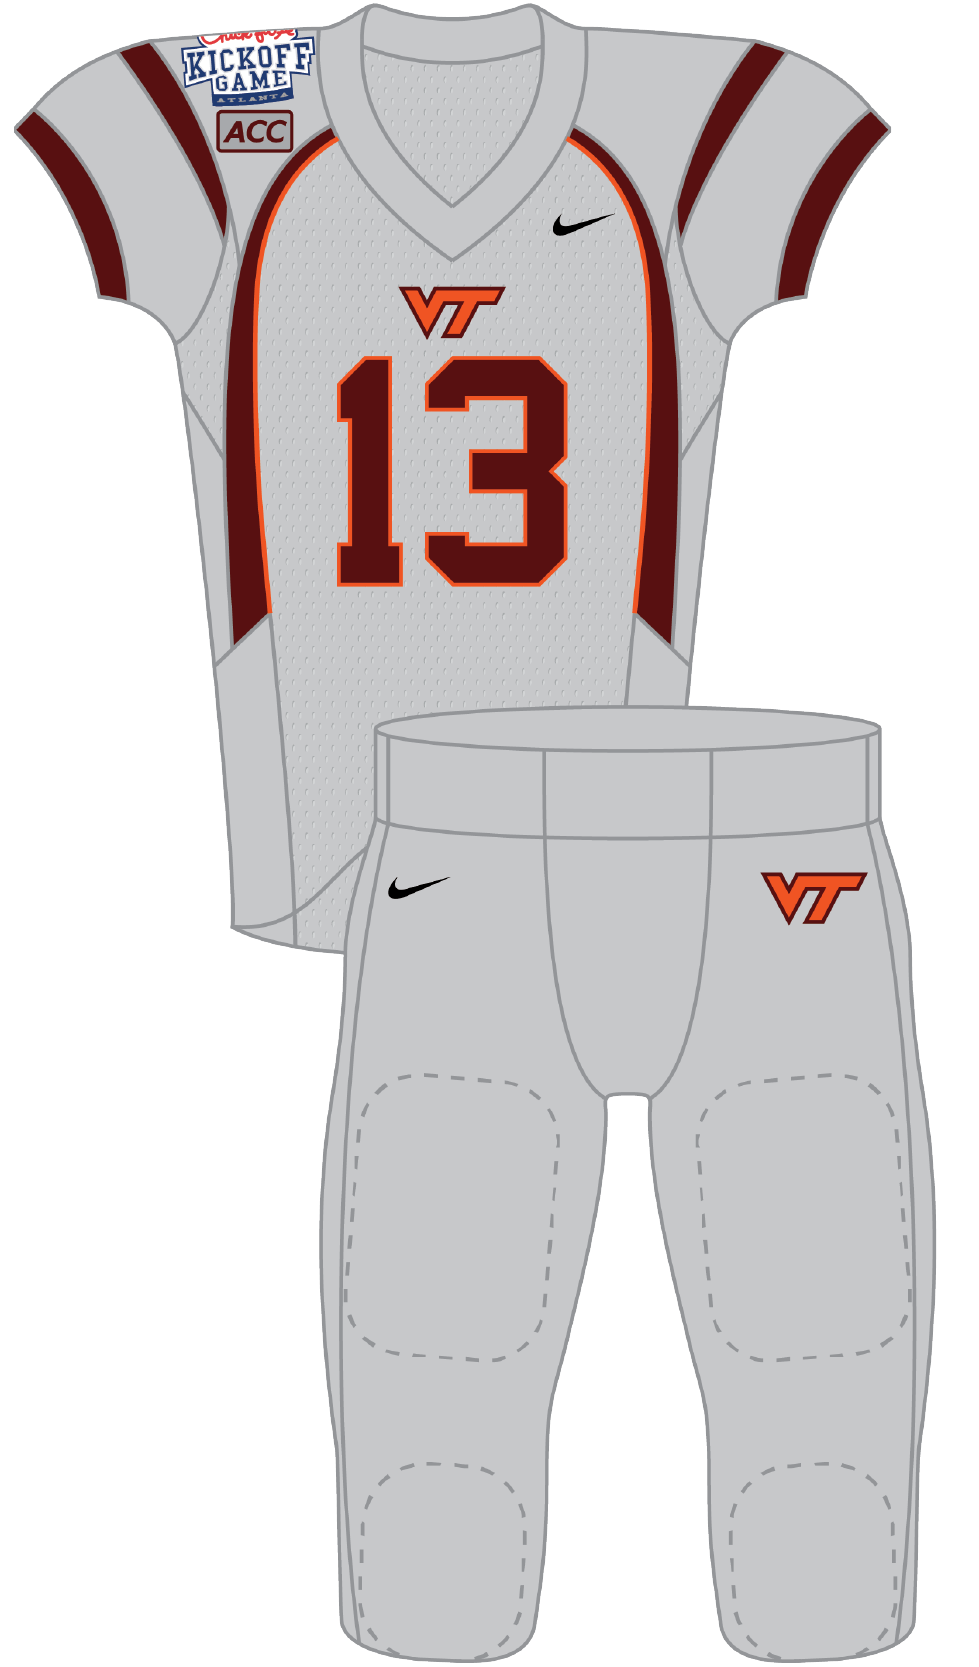 Virginia 2013 Grey Uniform